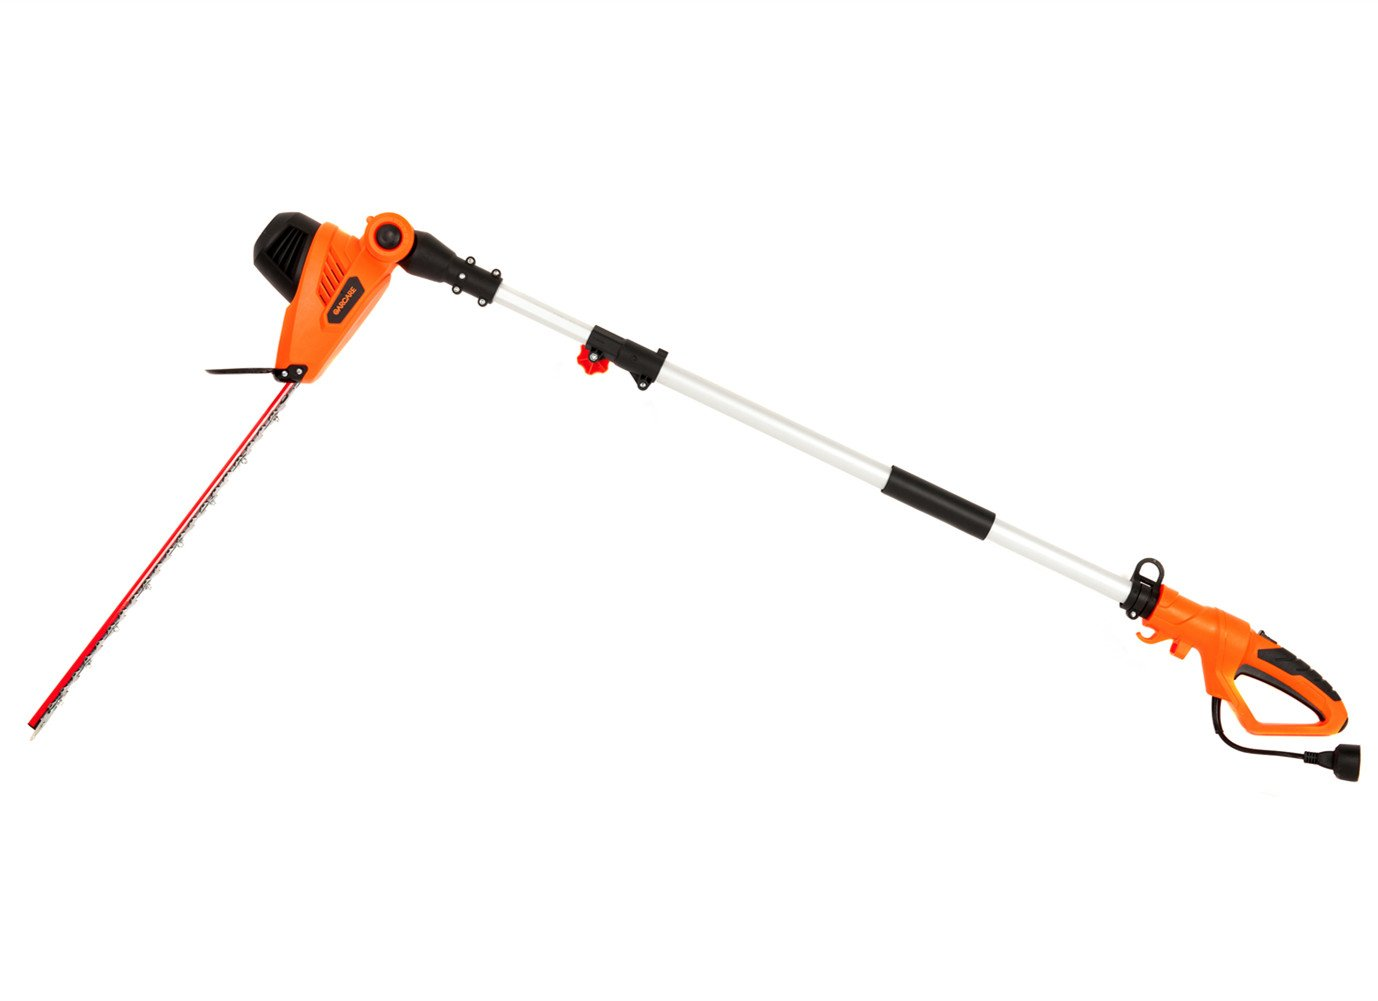 GARCARE 4.8-Amp Multi-Angle Corded Pole Hedge Trimmer with 20-Inch Laser Blade, Blade Cover Included